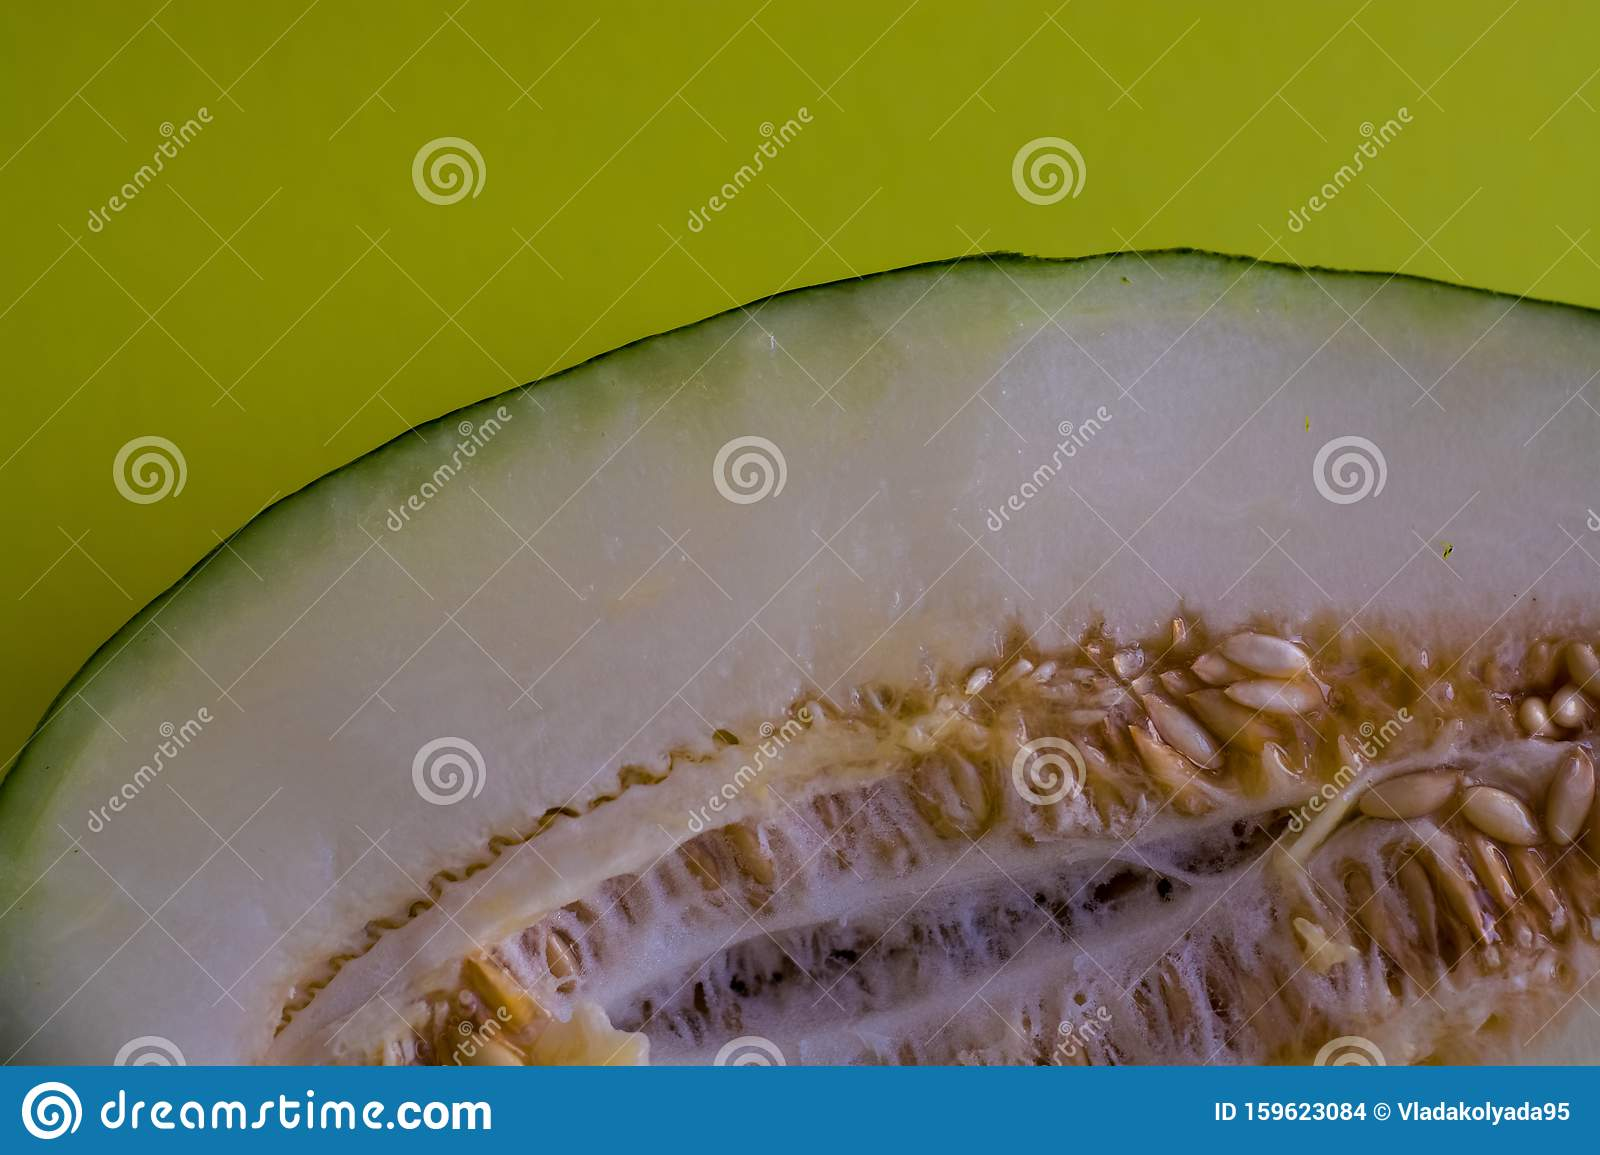 Half Of The Cut Ripe Melon With Seeds On One Ton Green Background Useful Fruit Summer Season Vitamins Stock Photo Image Of Part Cantaloupe 159623084 When in season, juicy cantaloupe is one of our favorite melons. dreamstime com